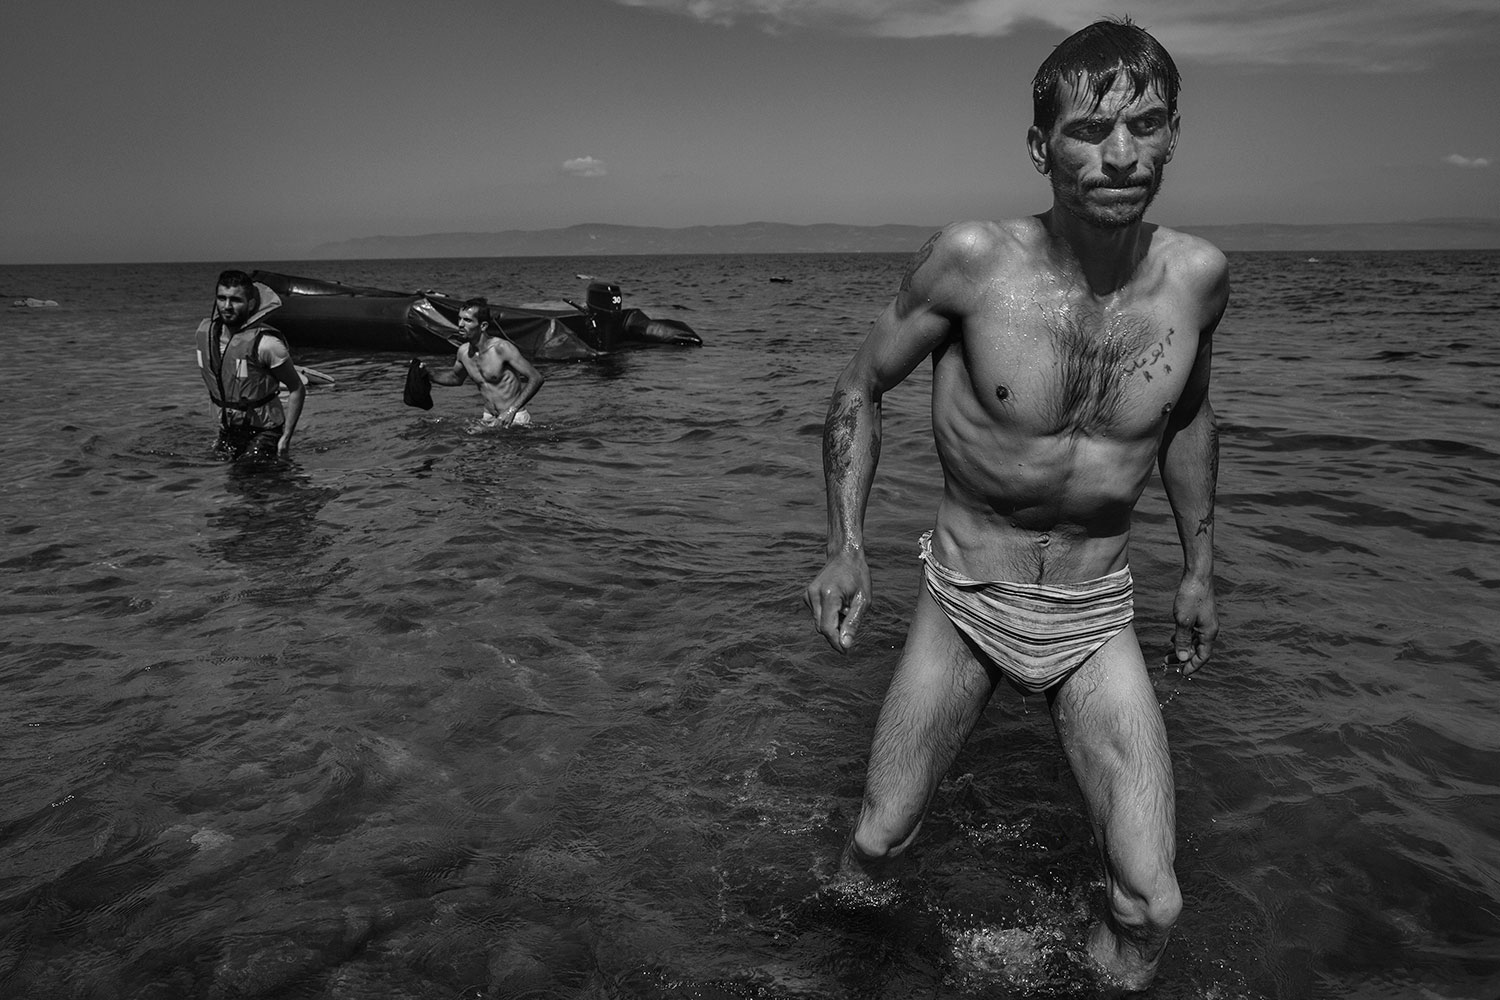 A migrant walks towards shore in Lesbos, Greece, after swimming from the inflatable boat he had taken in the crossing from Turkey.                                Refugees from Syria, Afghanistan, Pakistan, Somalia cross the sea between Turkey and to the island of Lesbos, as the first step in making their way across Europe. Sept. 27, 2015.